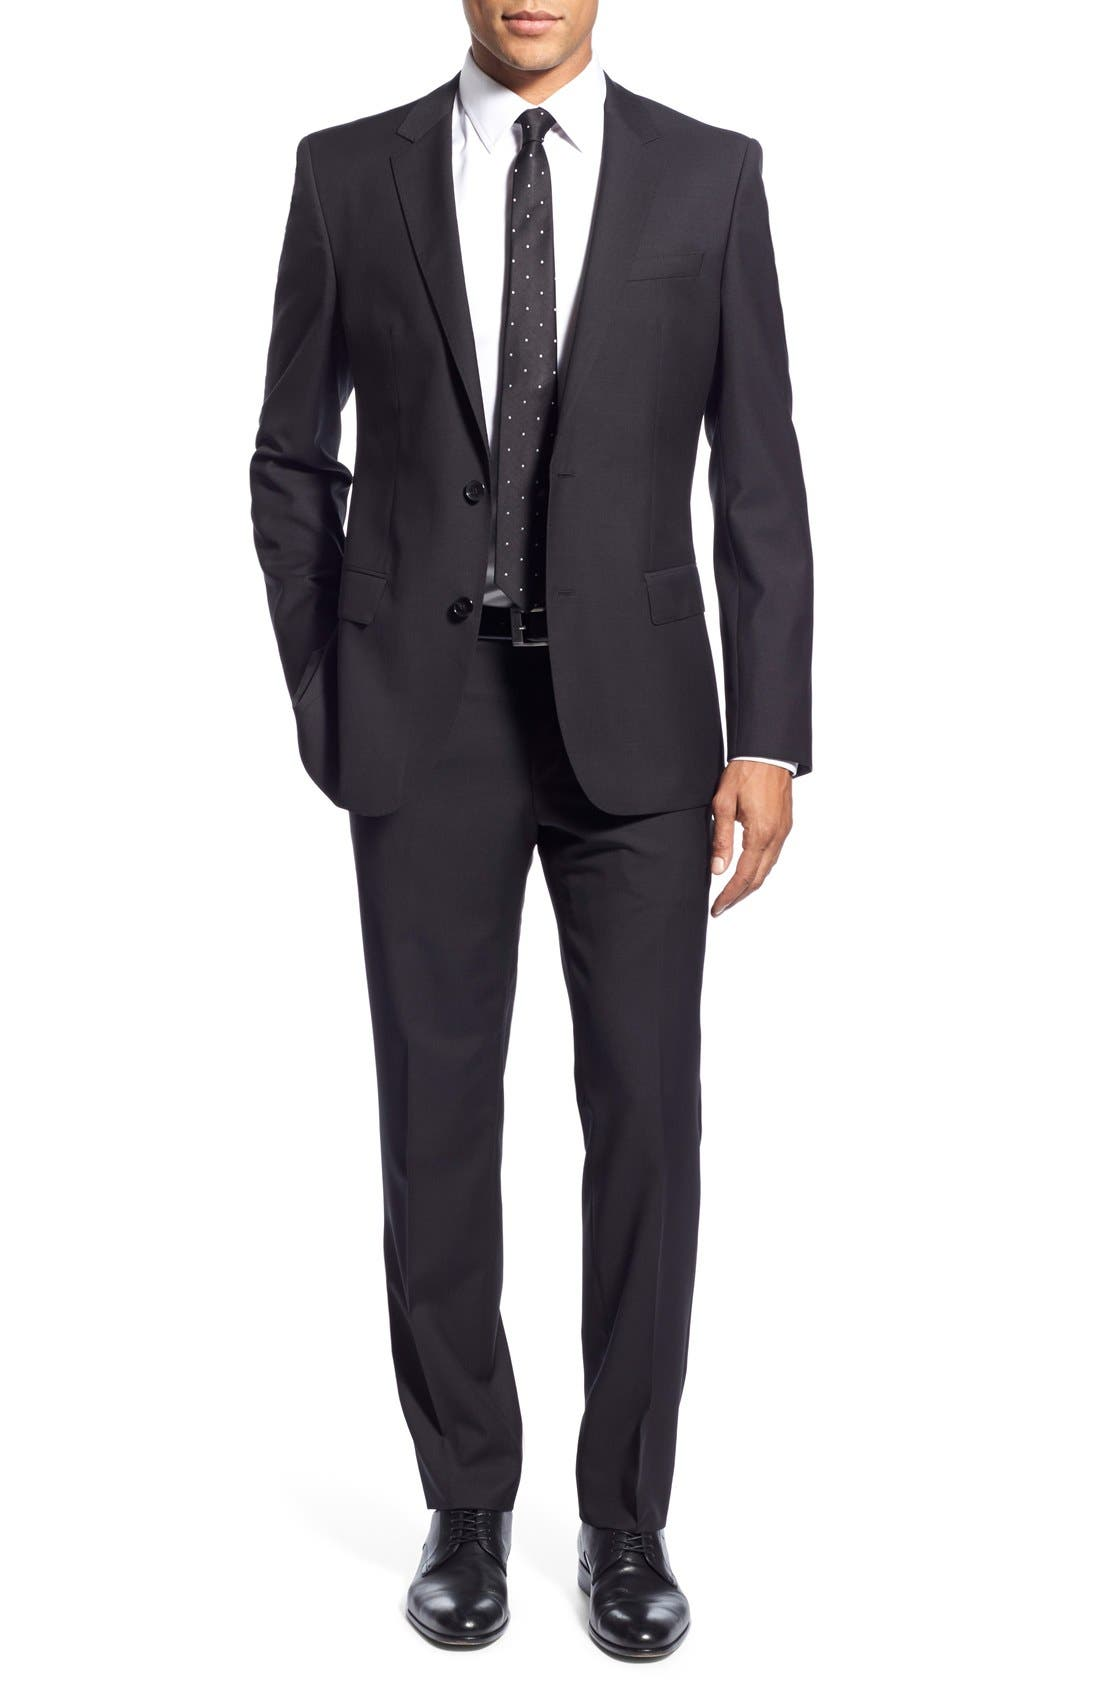 Main Image - BOSS 'Huge/Genius' Trim Fit Solid Wool Suit